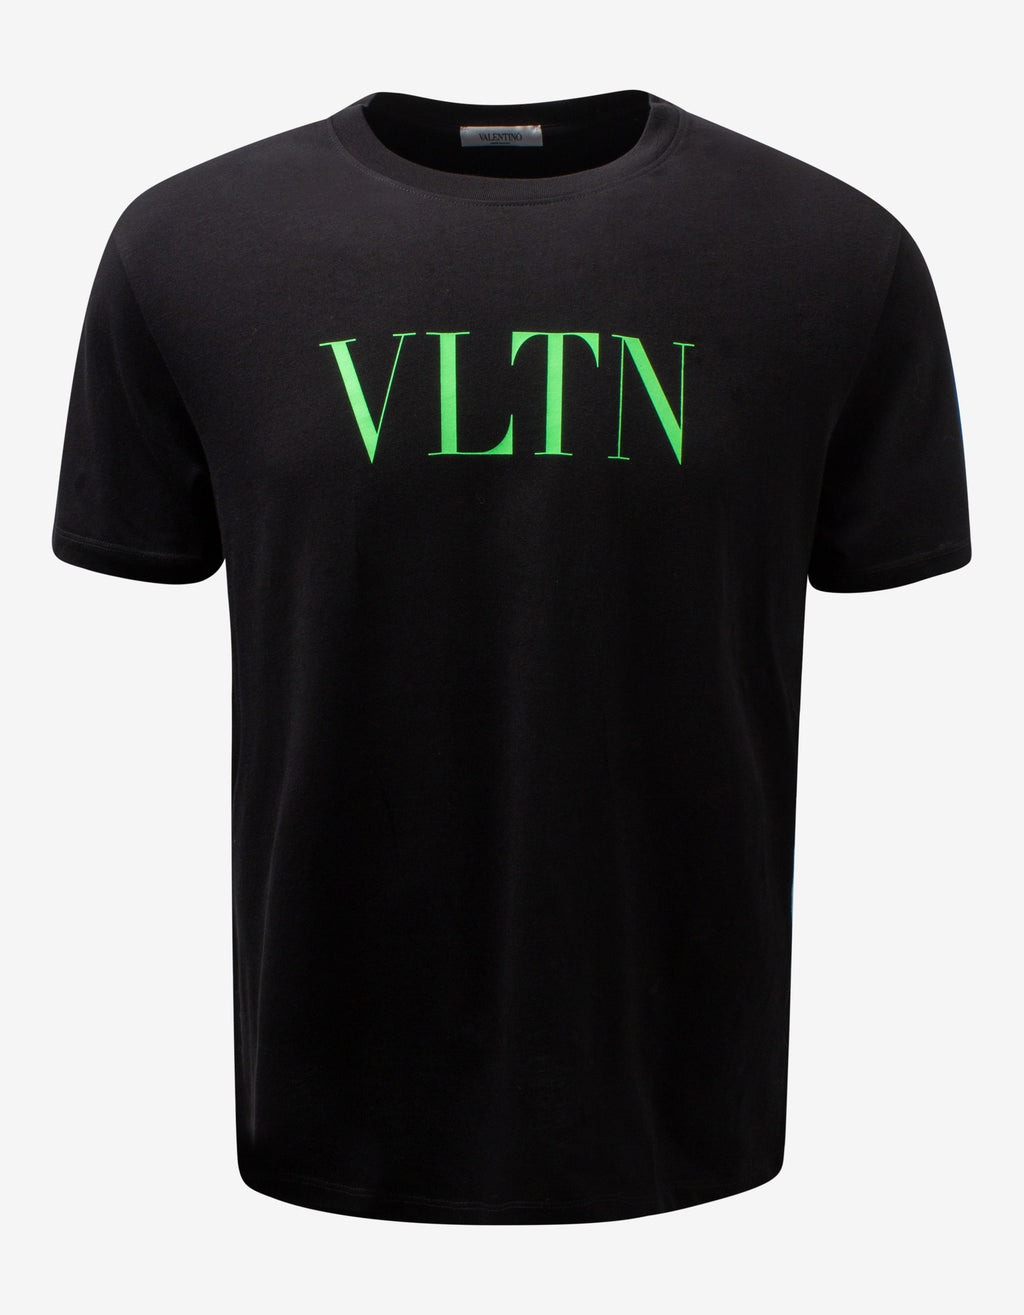 Black T-Shirt with Neon Green VLTN Print